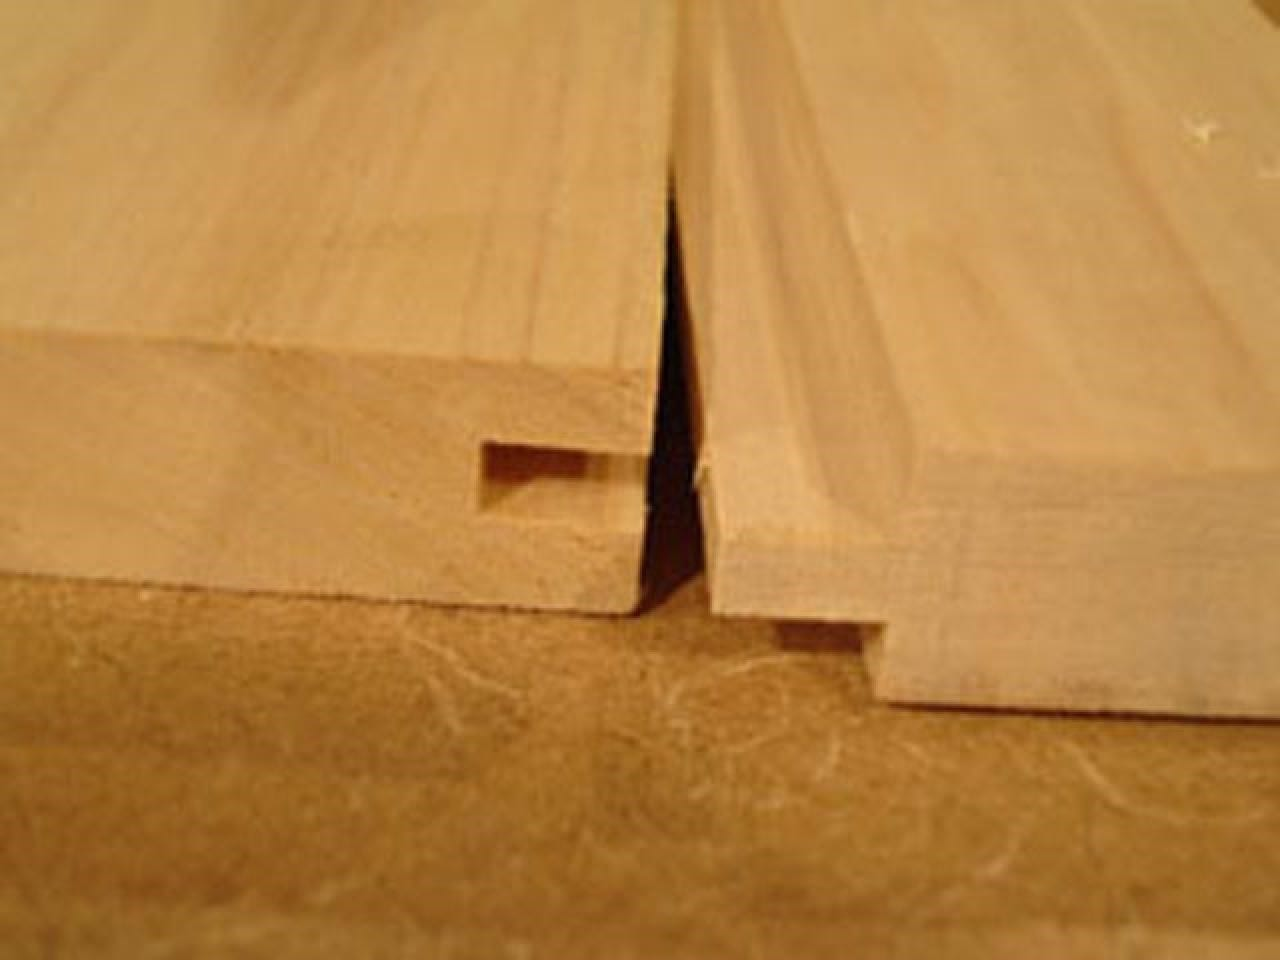 How To Cut A Groove In Wood Without A Router Cut The Wood